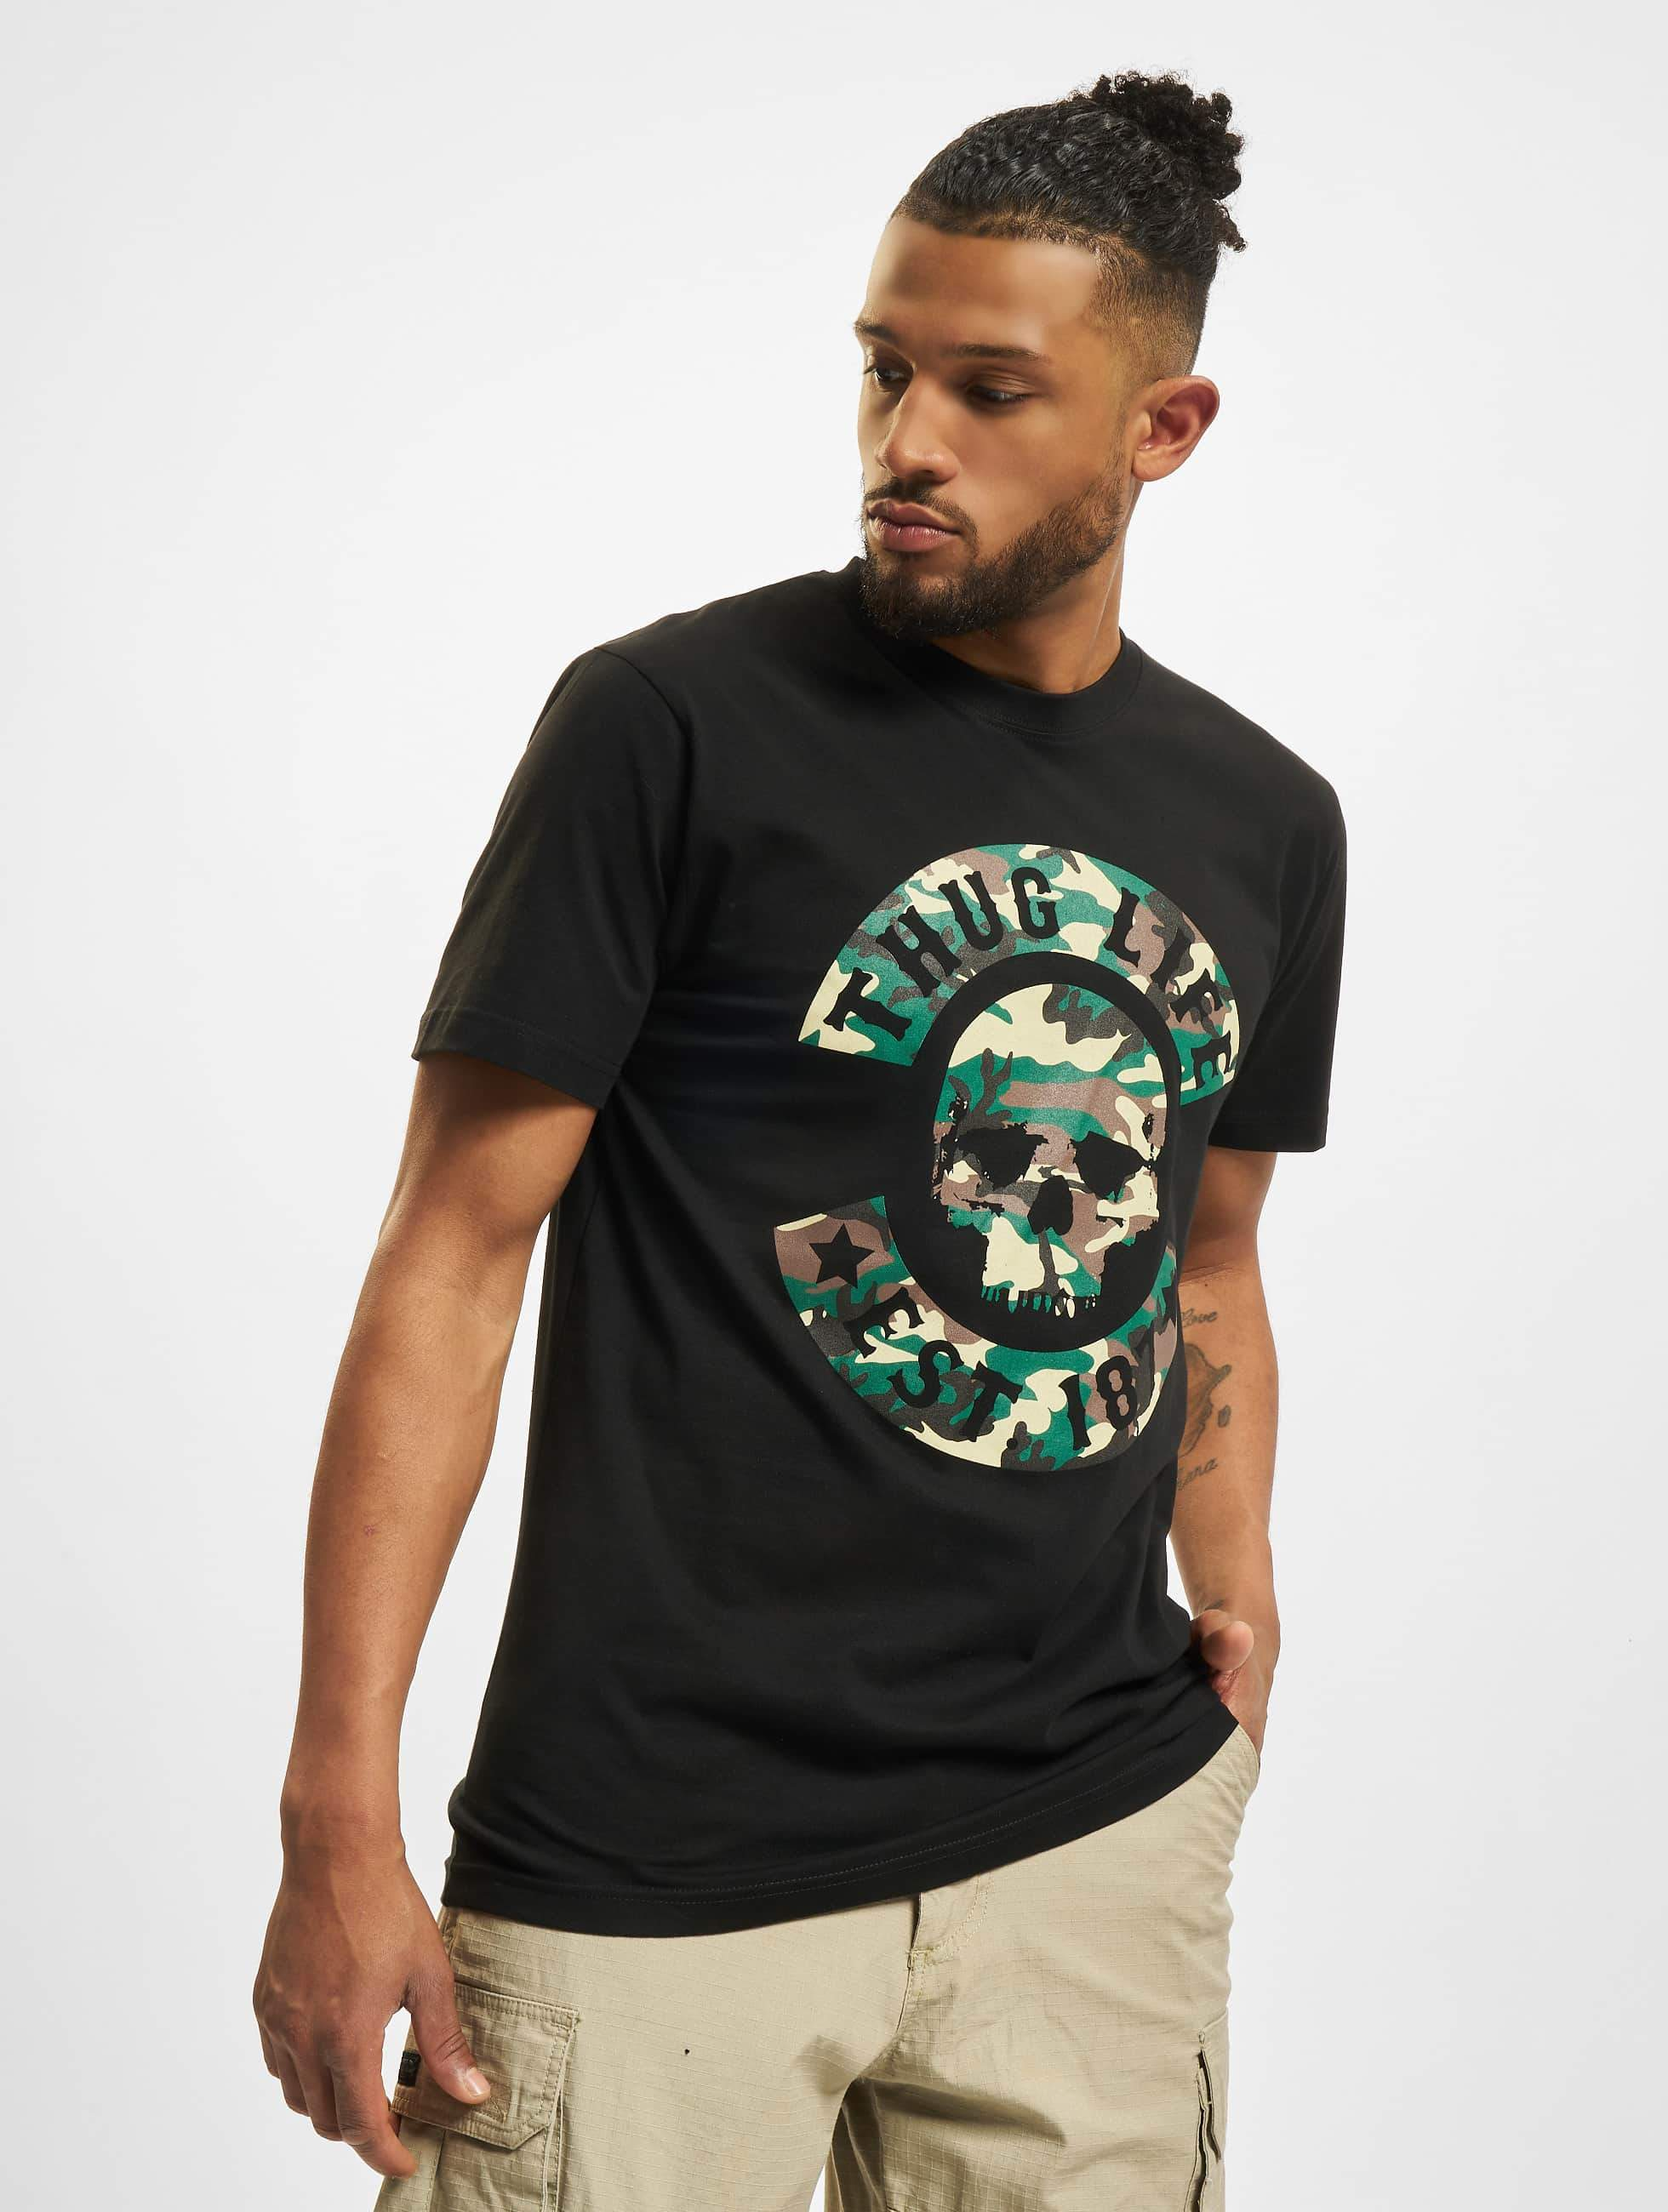 Thug Life / T-Shirt B. Camo in black 2XL